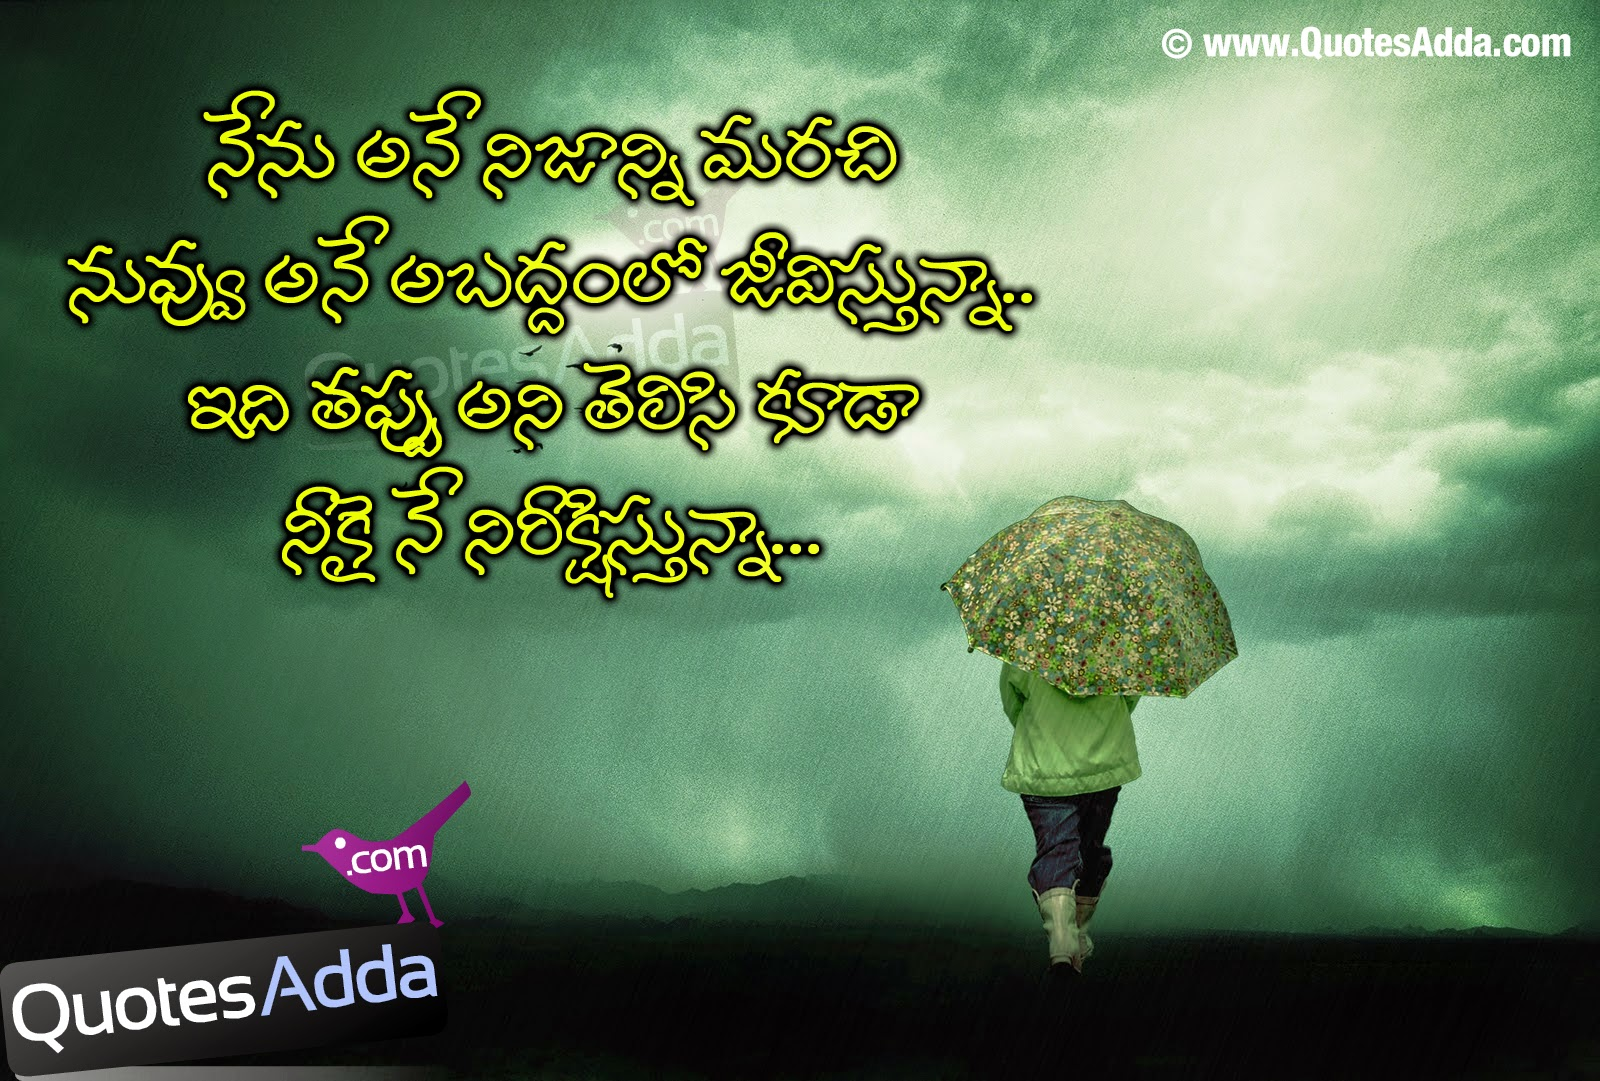 Nice Telugu One Side love Quotations Images | Quotes Adda.com | Telugu ...